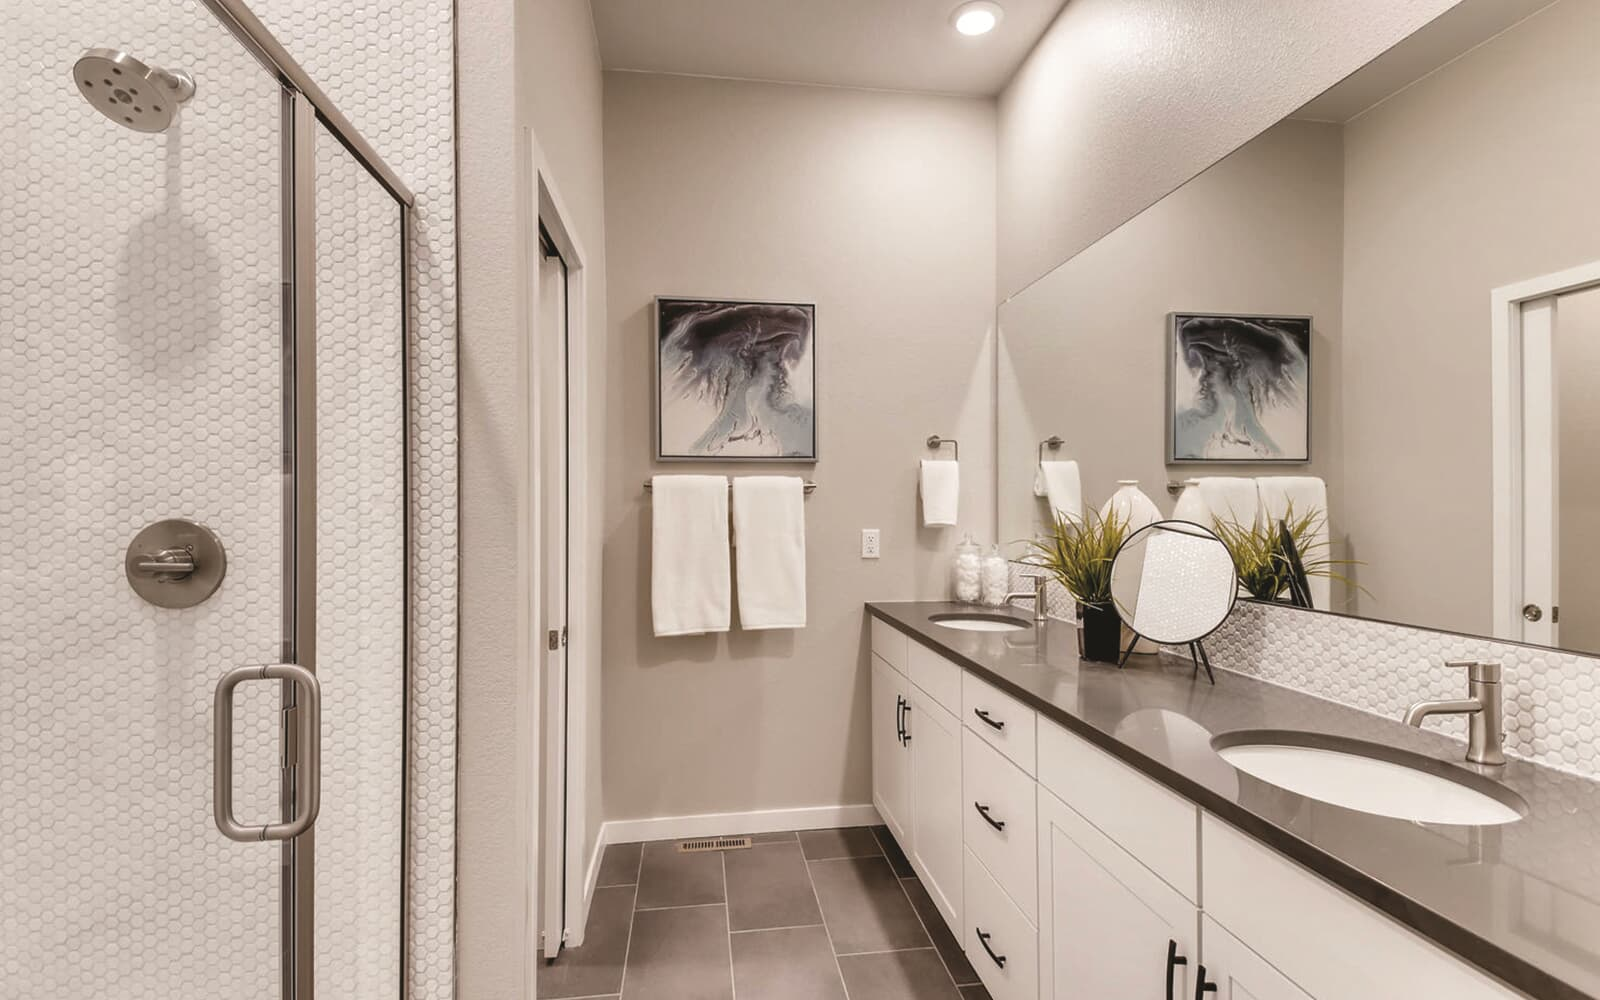 Villa-Three-Interior-Master-Bathroom-Barefoot-Lakes-Denver-Colorado